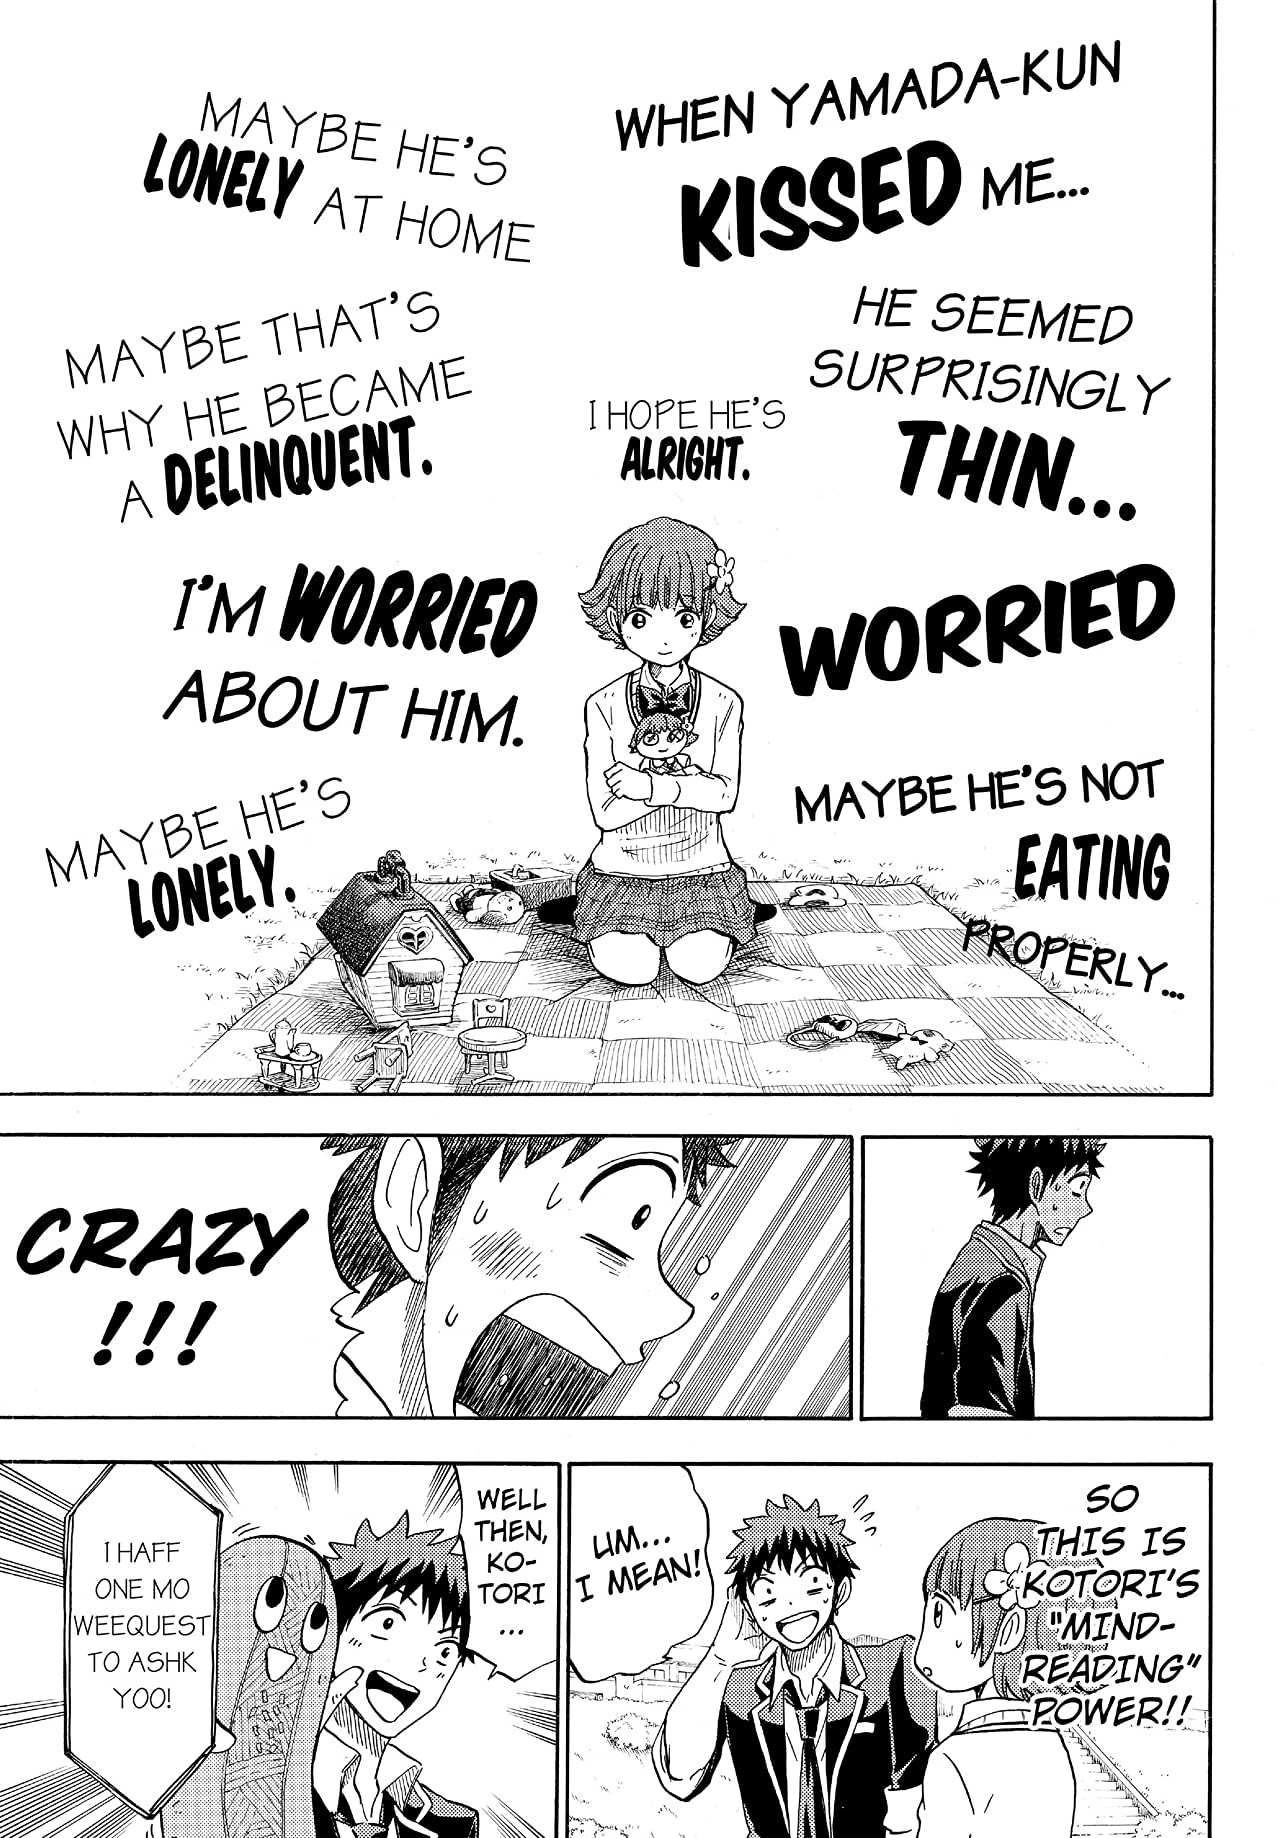 Yamada-kun and the Seven Witches #107